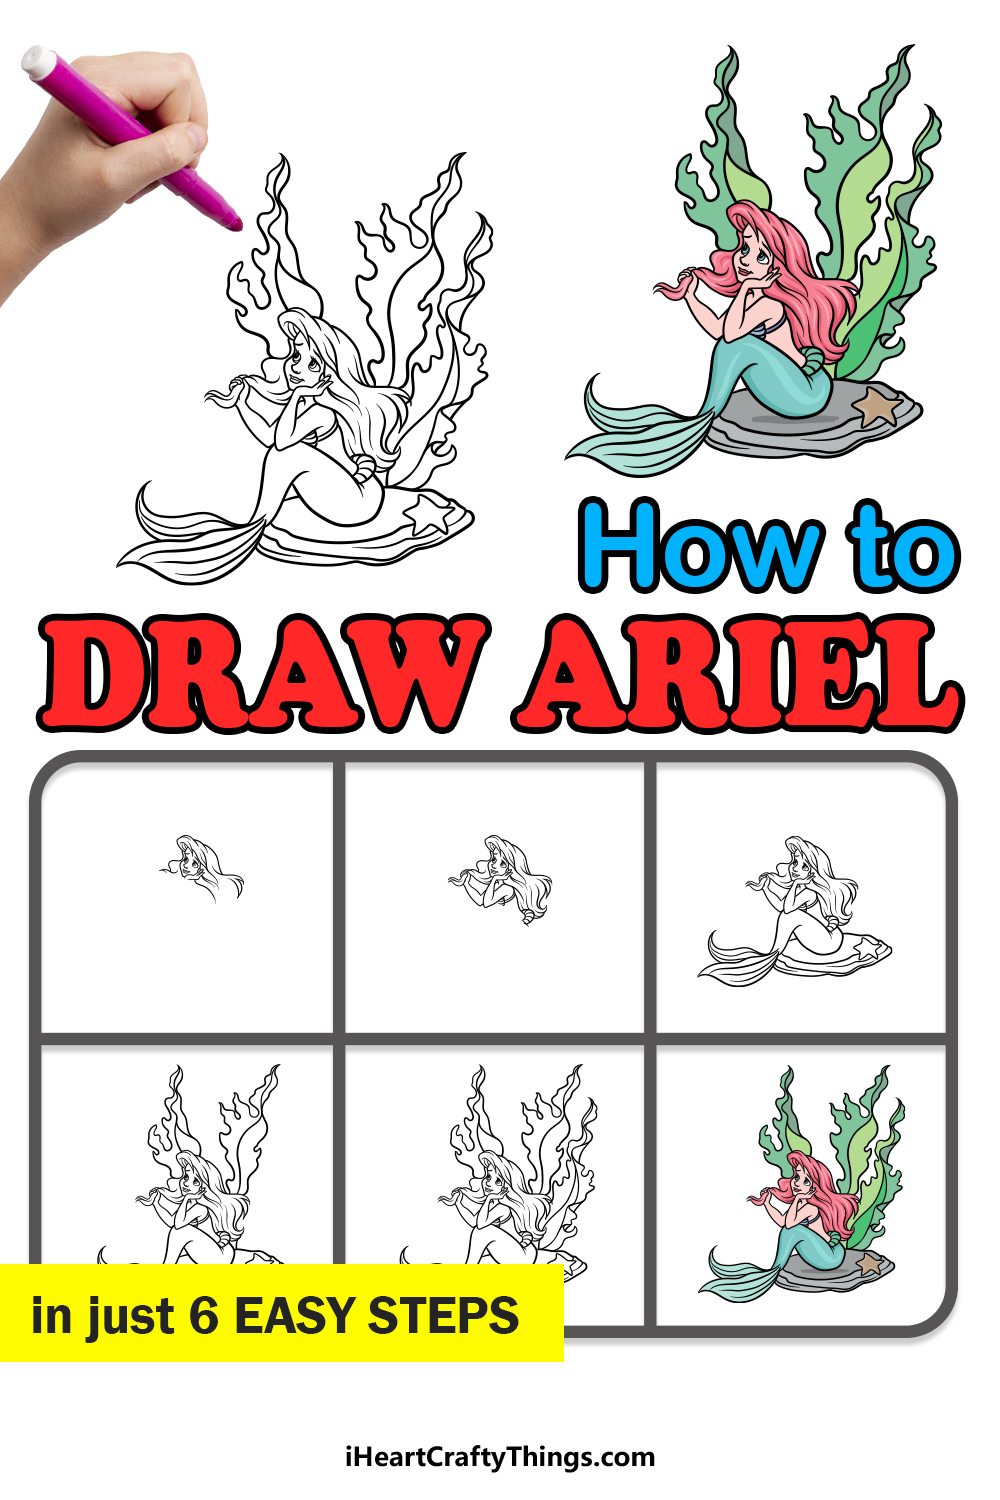 how to draw Ariel in 6 easy steps